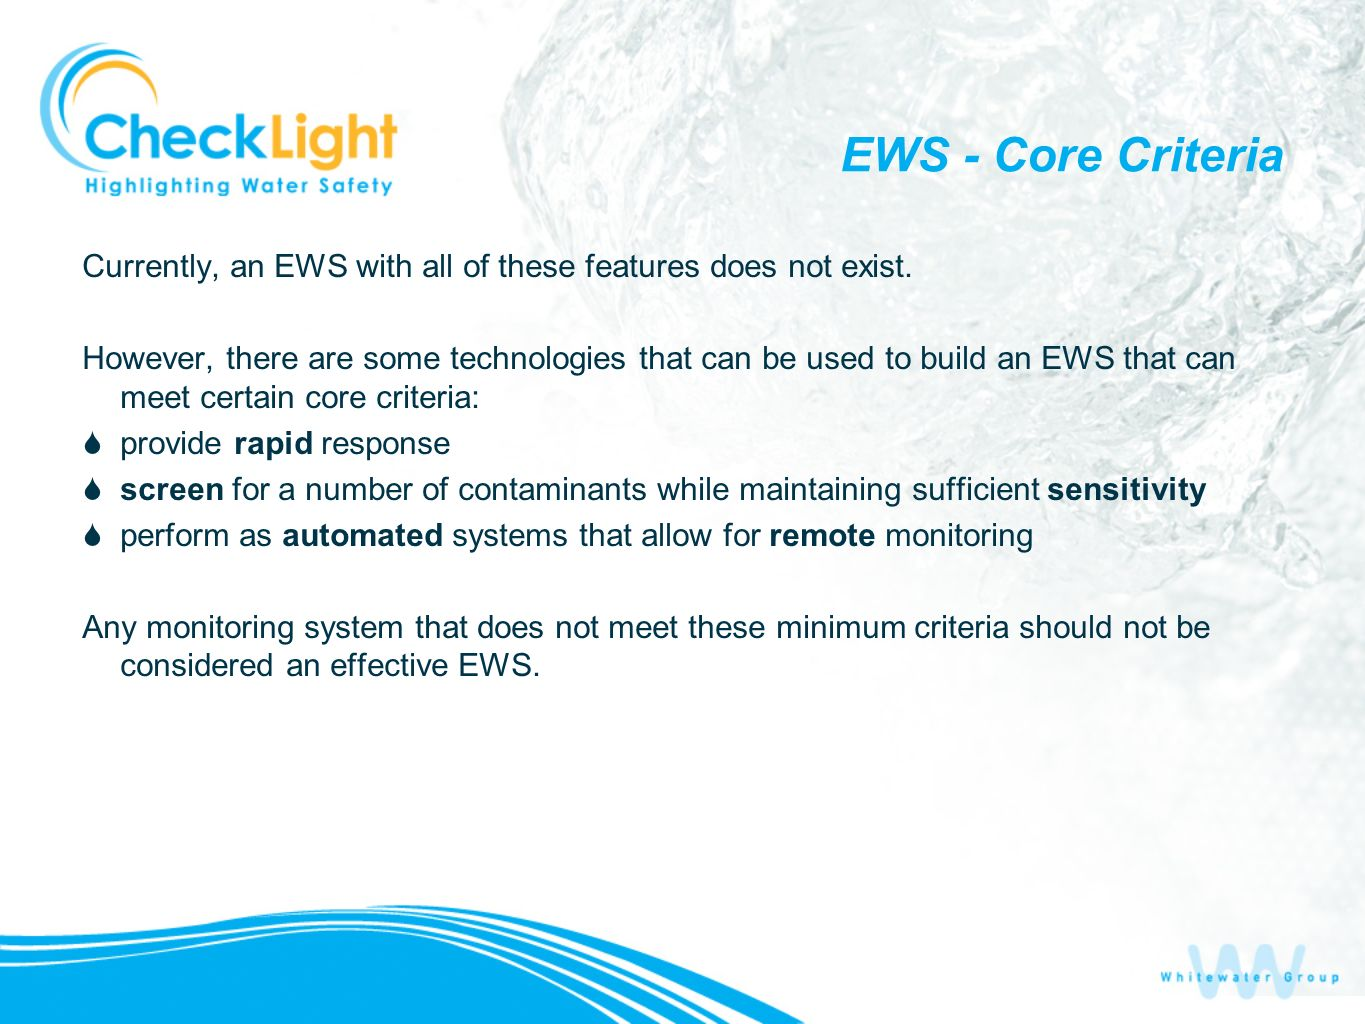 Sensor Location and Density The location and density of sensors in an EWS is dictated by the results of the system characterization, vulnerability assessment, threat analysis, and usage considerations.